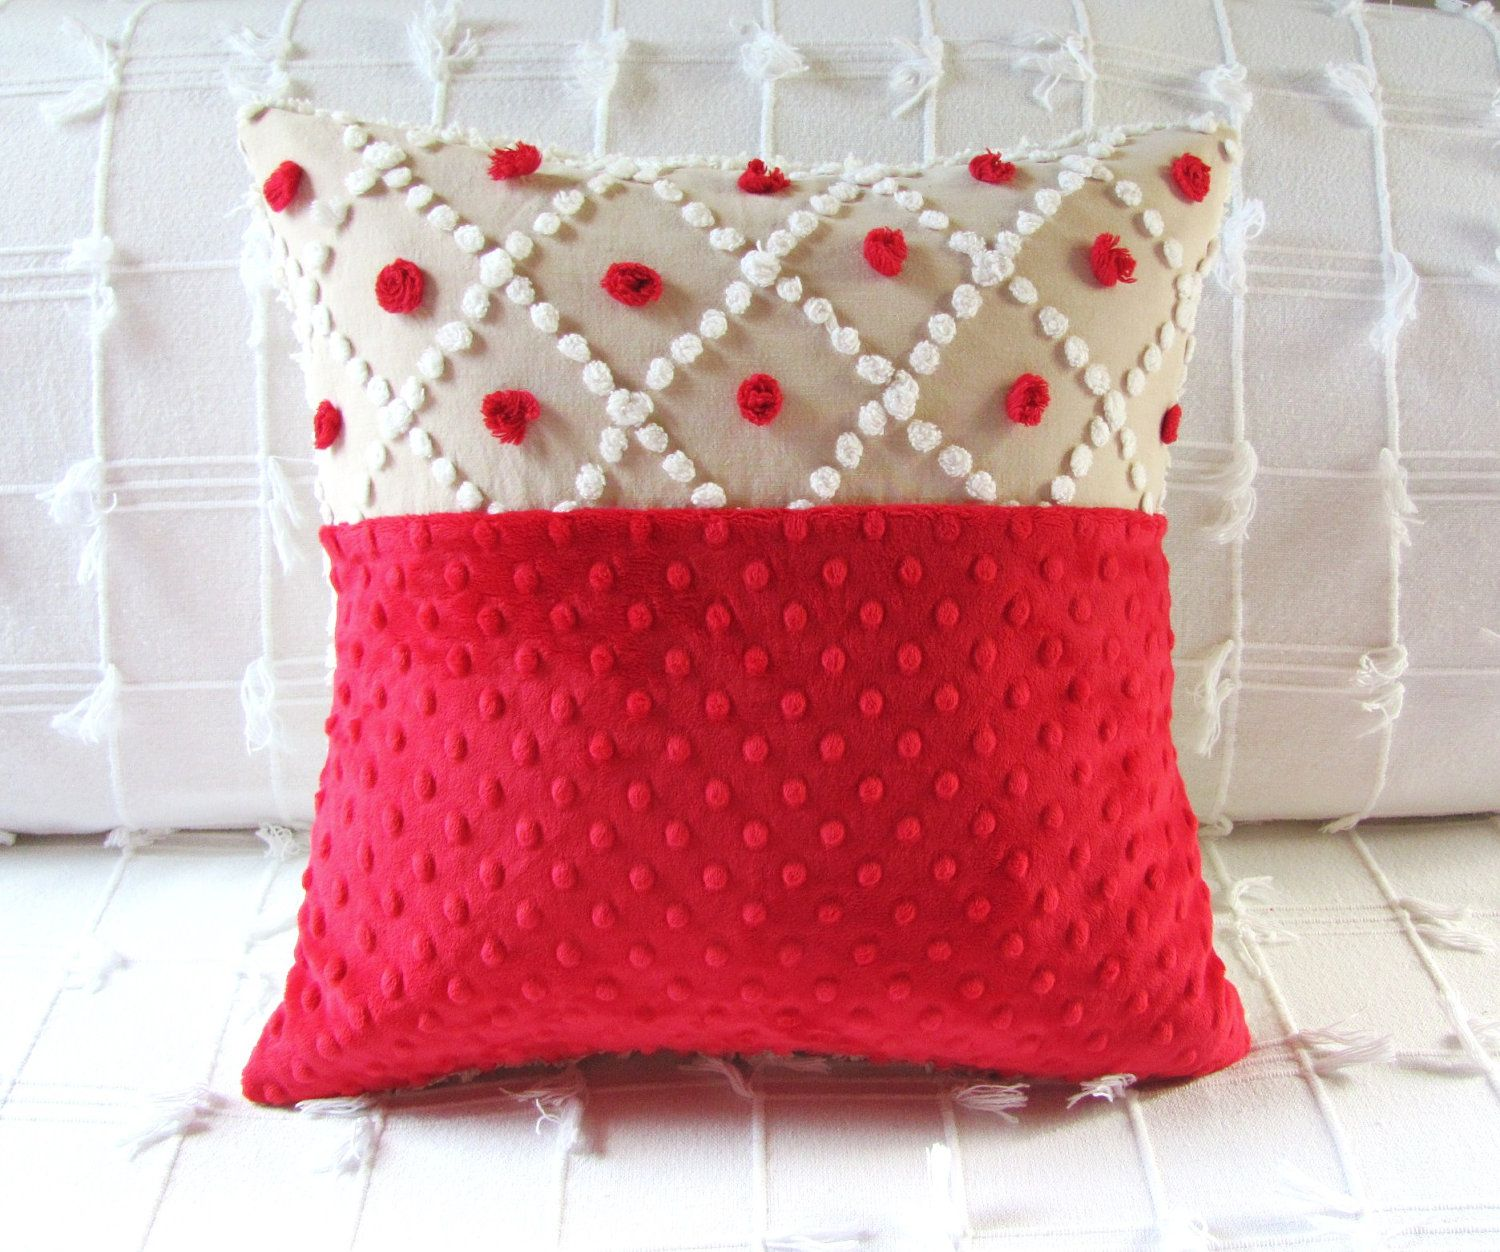 Christmas Decorating Ideas: 10 Pretty Holiday Pillows Pillows, Christmas pillow and Holidays